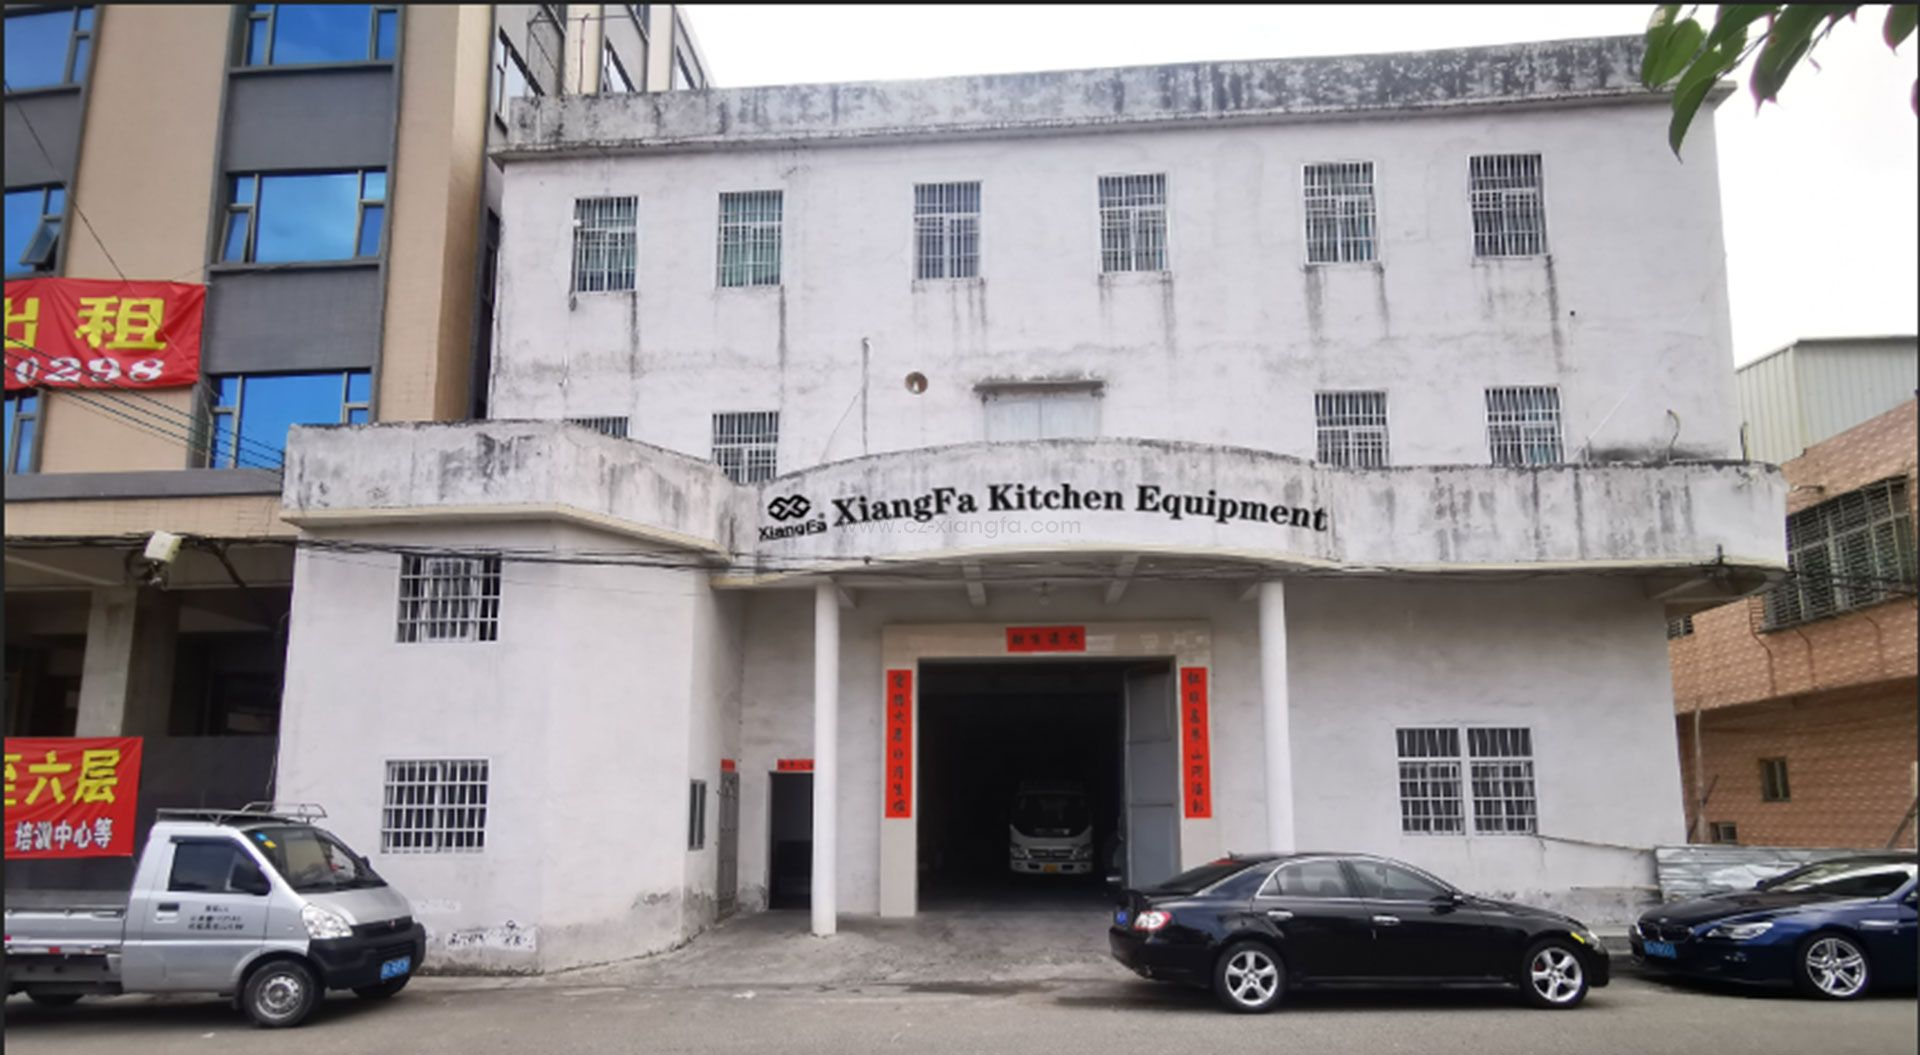 Chaozhou XiangFa Kitchen Equiptment Co., Ltd.